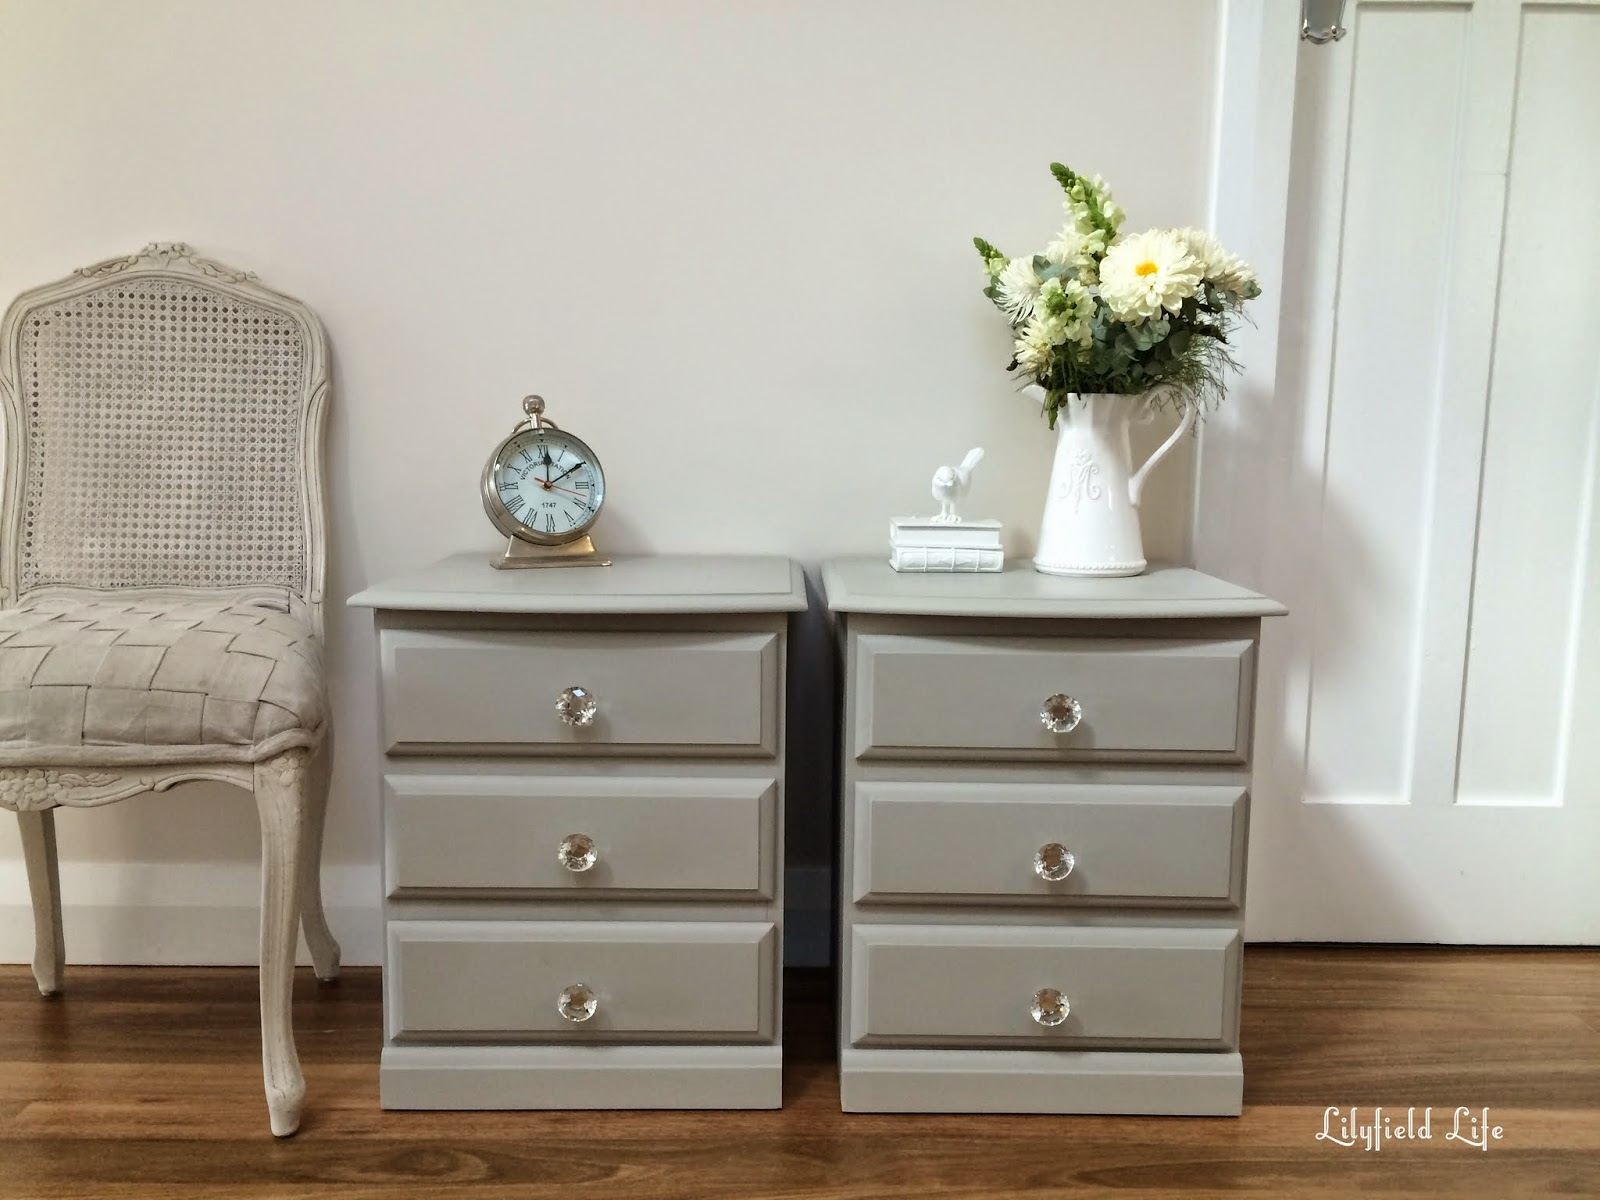 Lilyfield life latest pieces lots of painted pine furniture - White and pine bedroom furniture ...